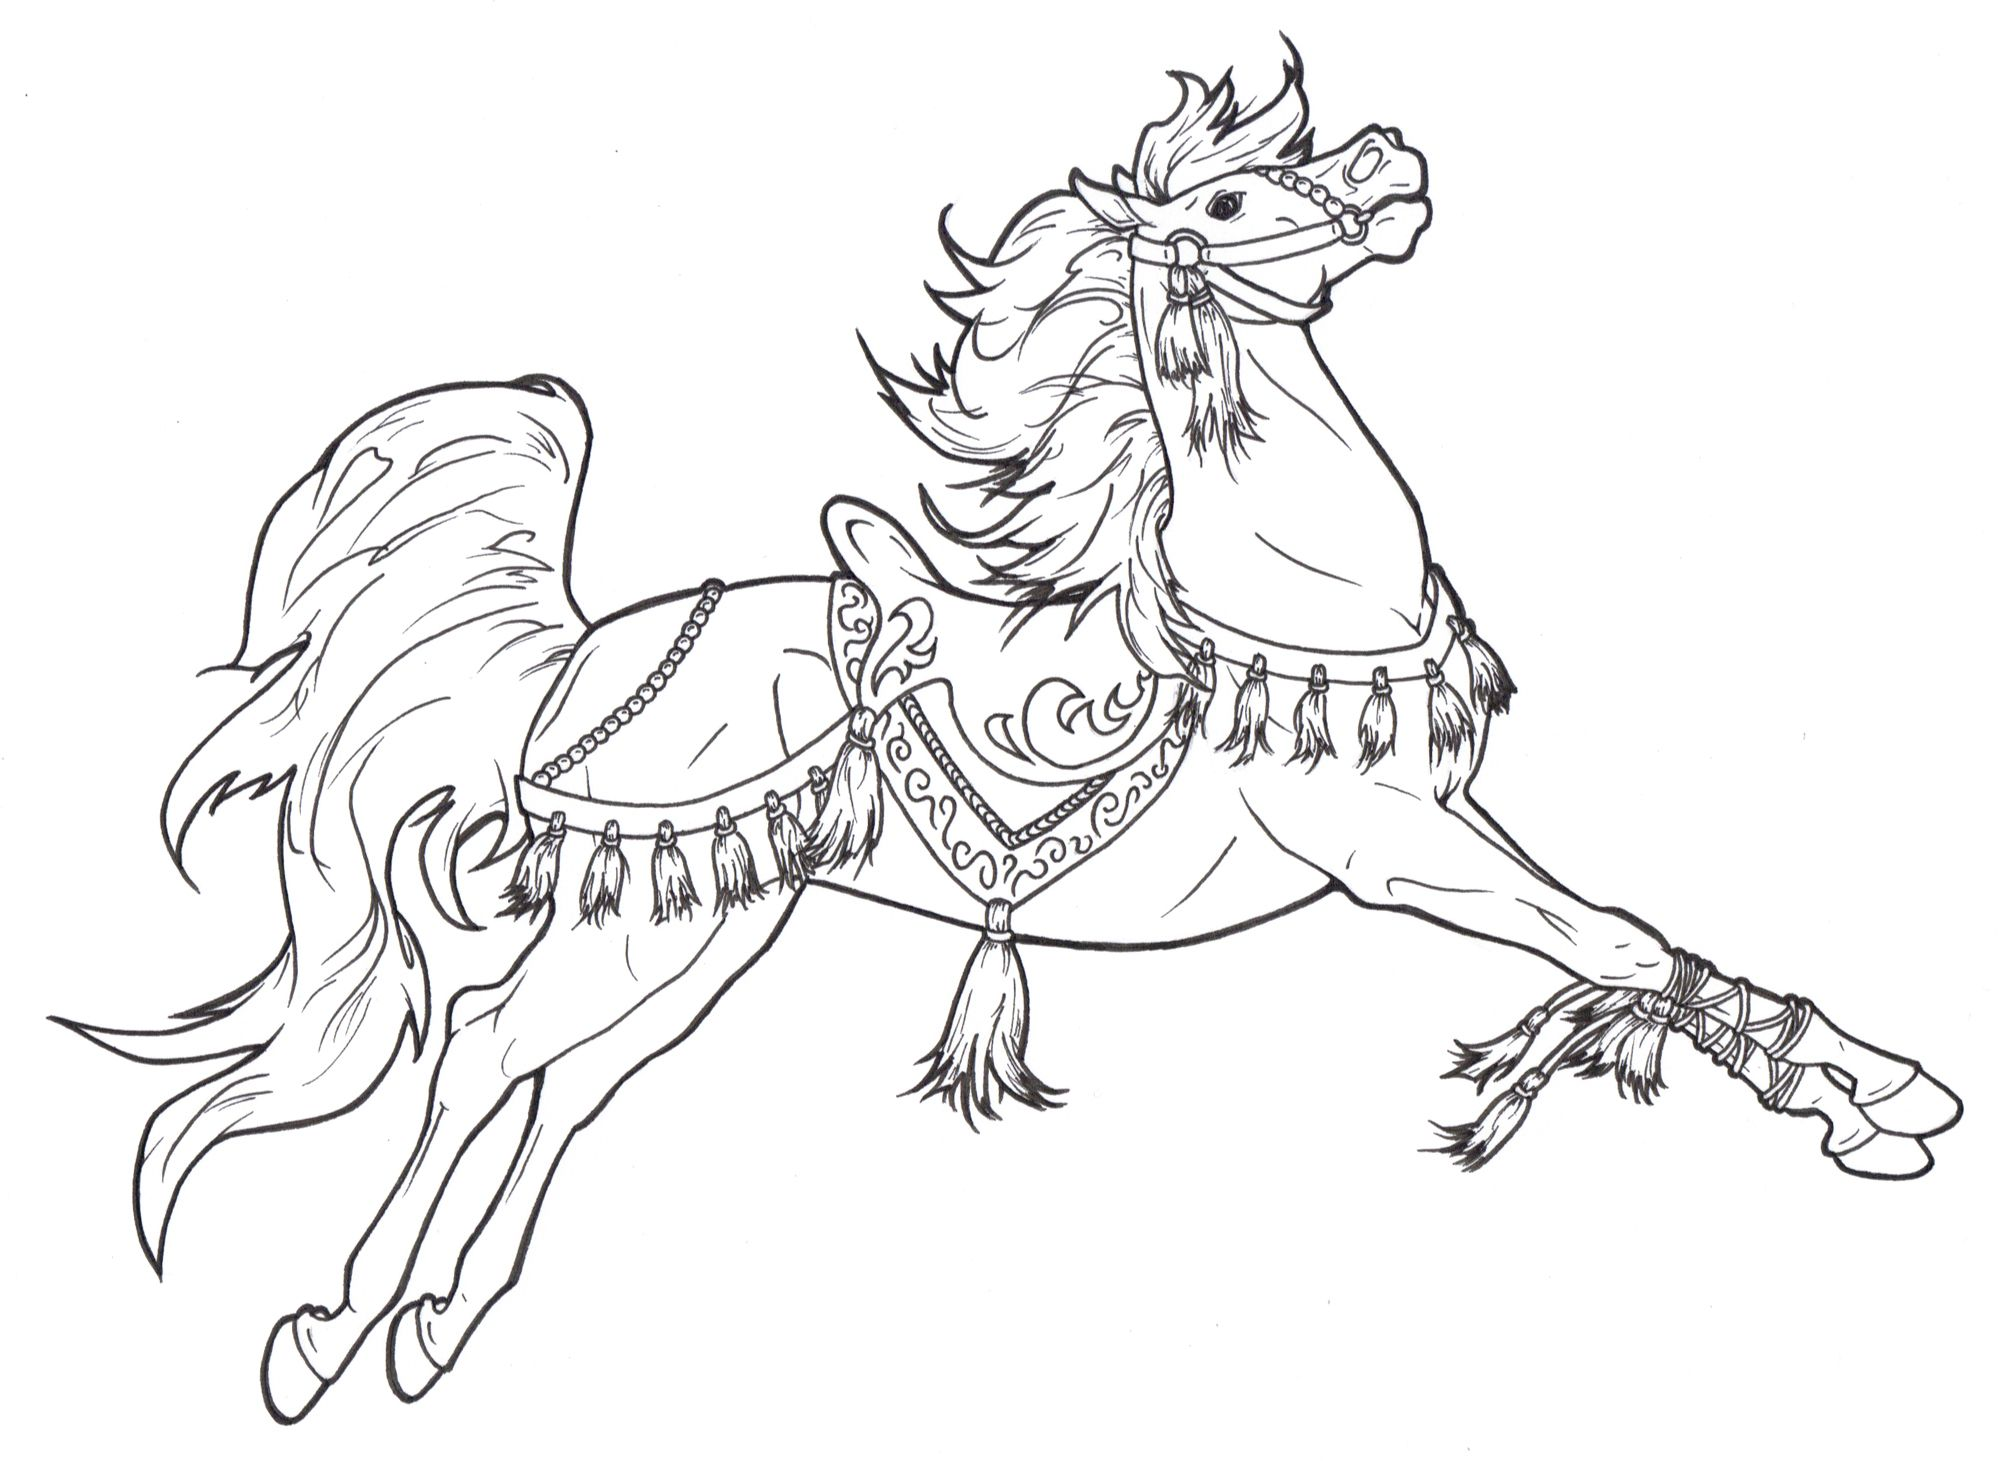 Carousel Horse With Tassels Makes Me Think Of A Heraldic Costume